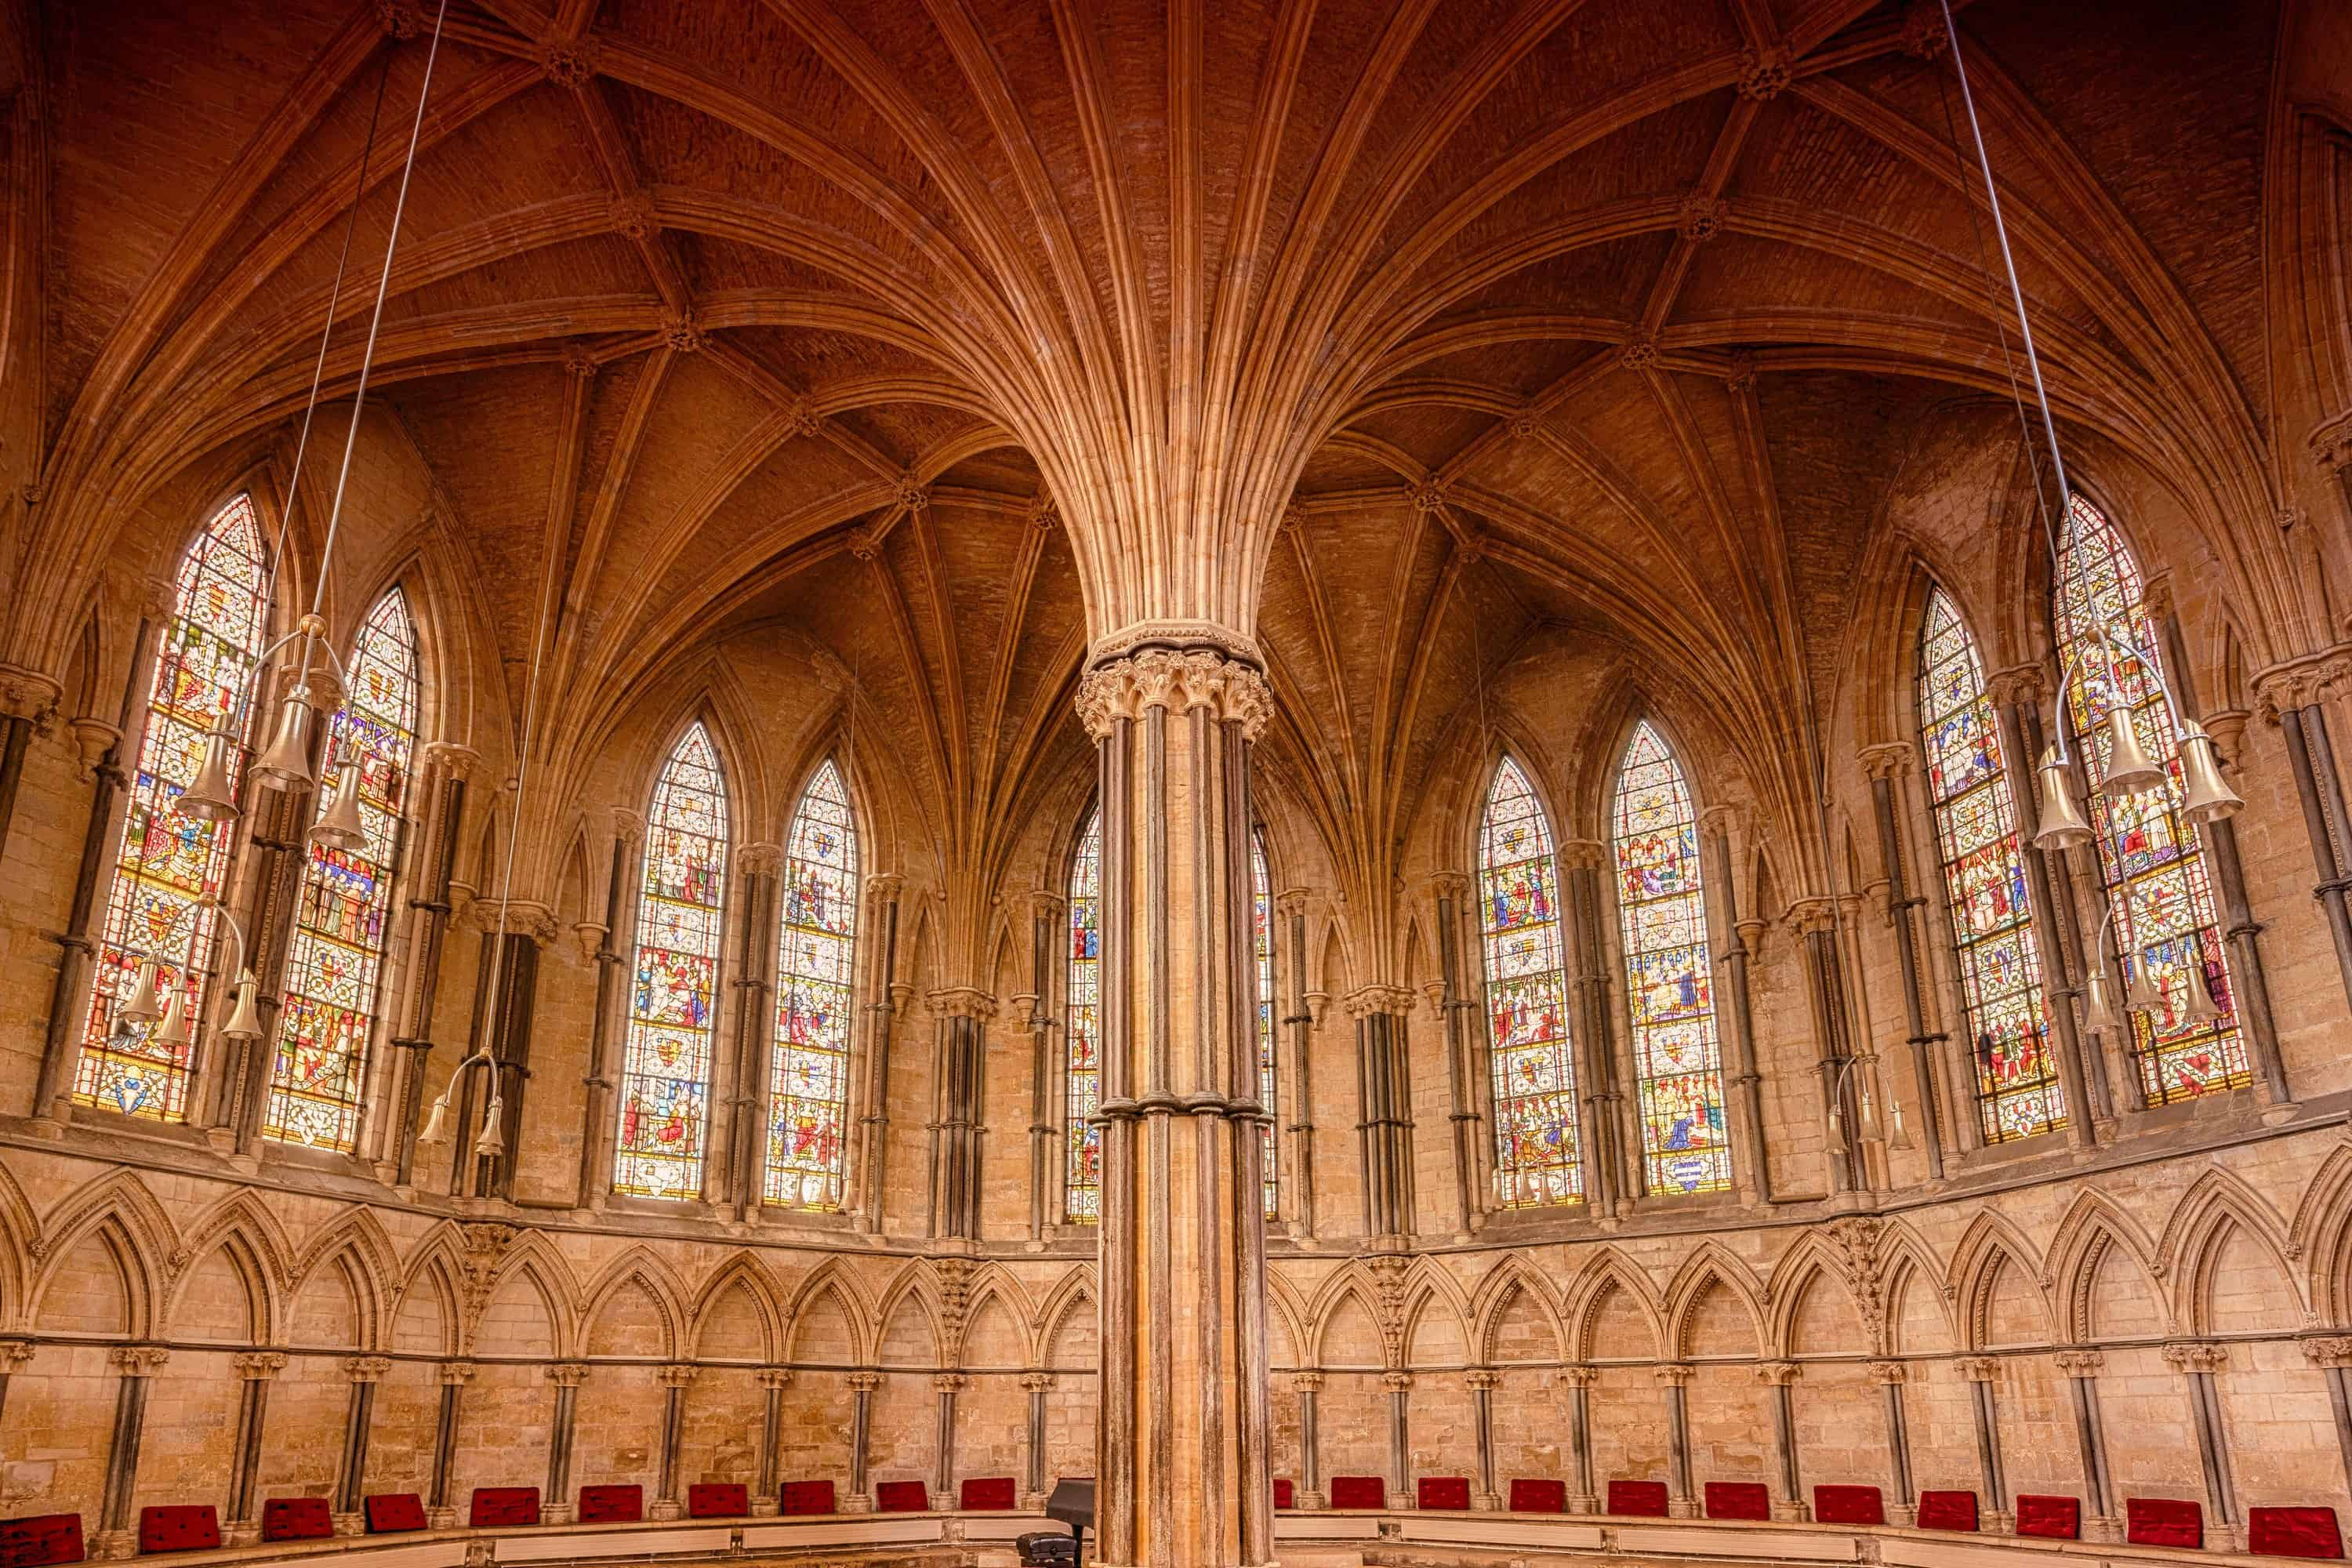 Faith is Critical - Abbey interior image